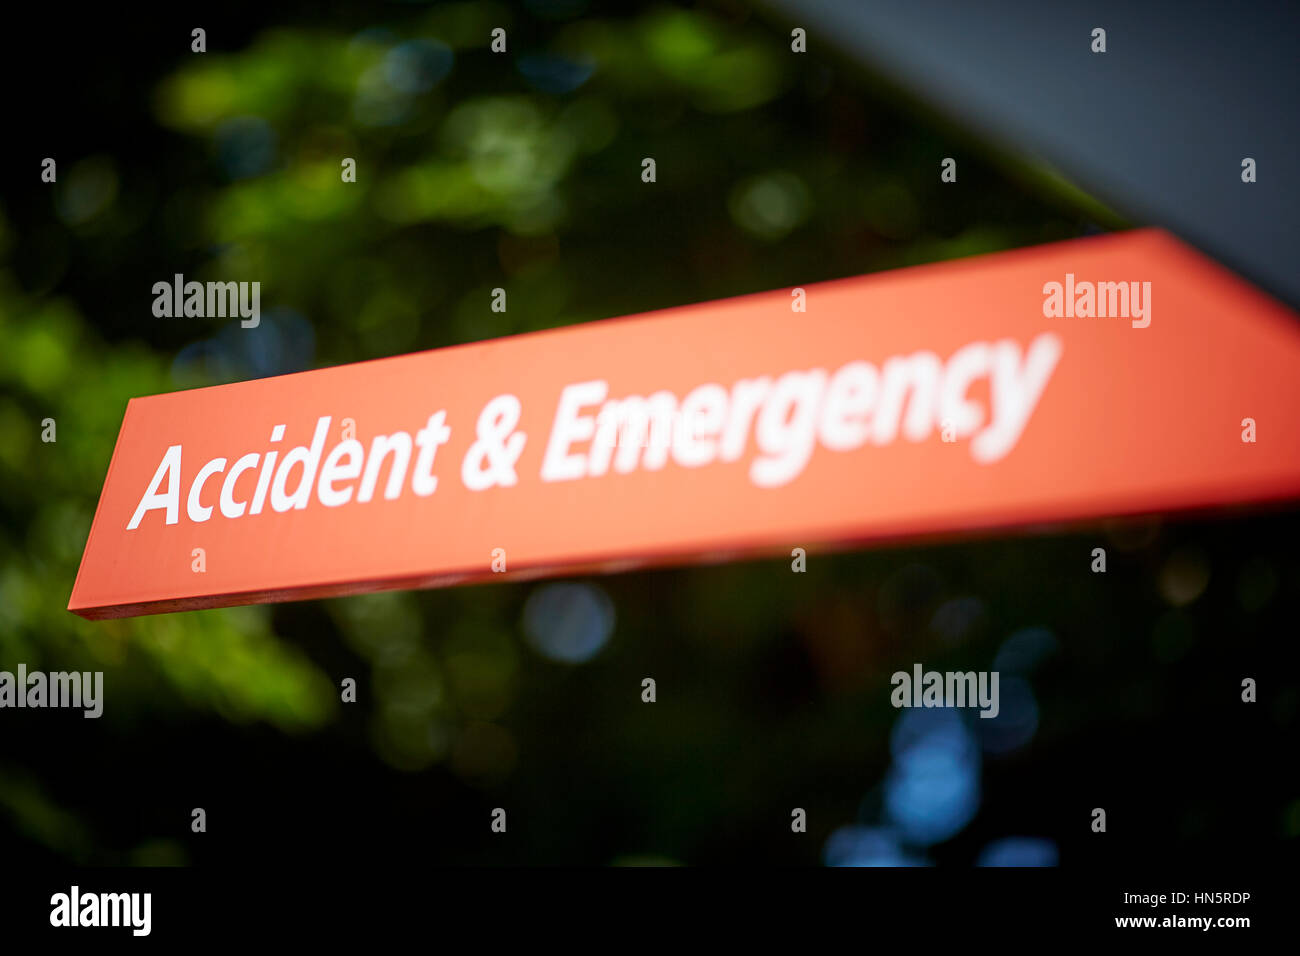 Red NHS Manchester Royal Infirmary MRI Accident and emergency Hospital information destination pointing A&E - Stock Image